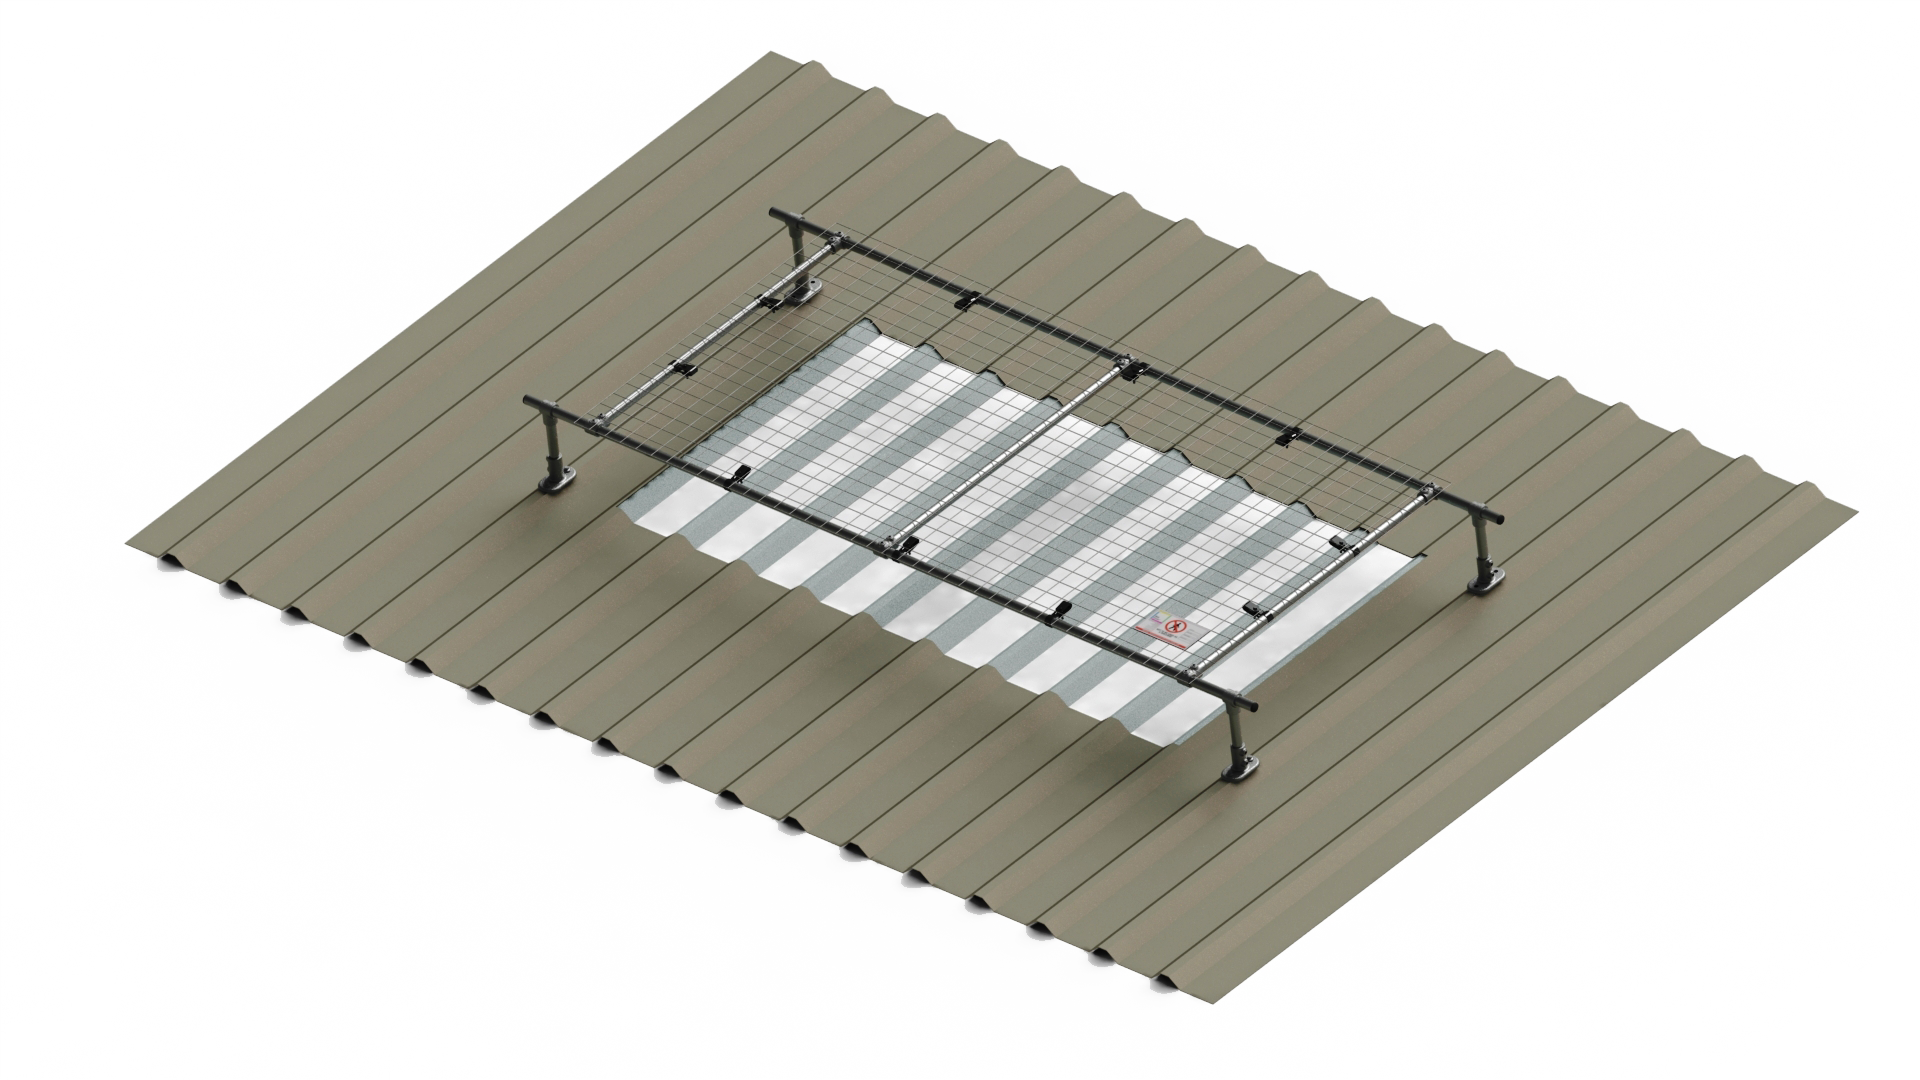 2m wide raised light cover (with extension options)